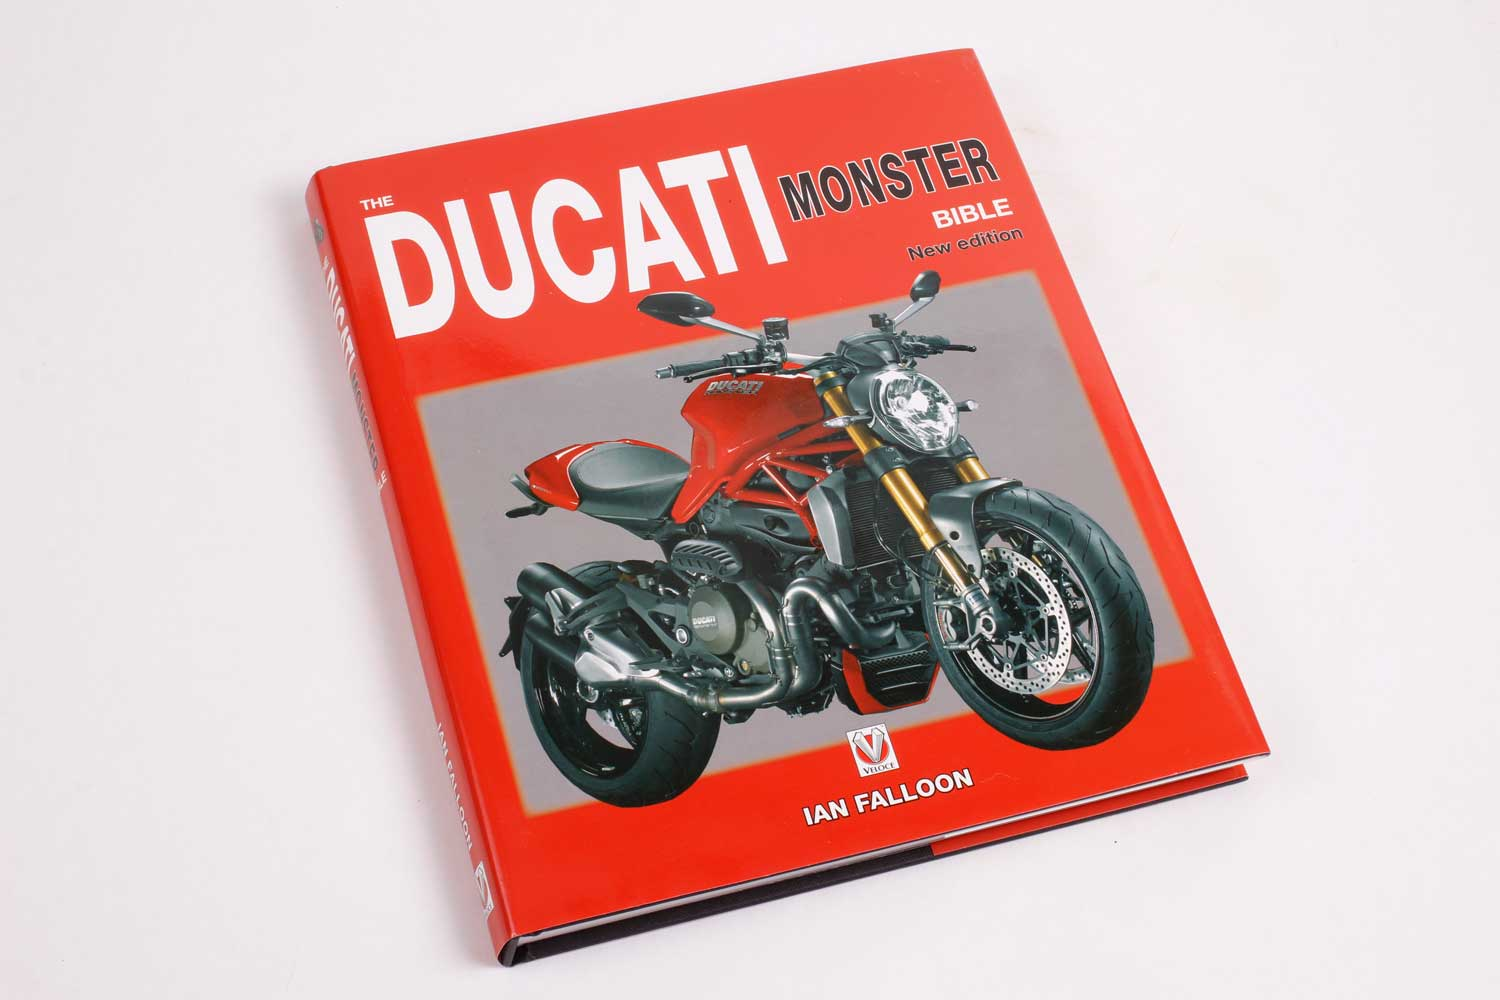 Motorcycle-Christmas-Books-019